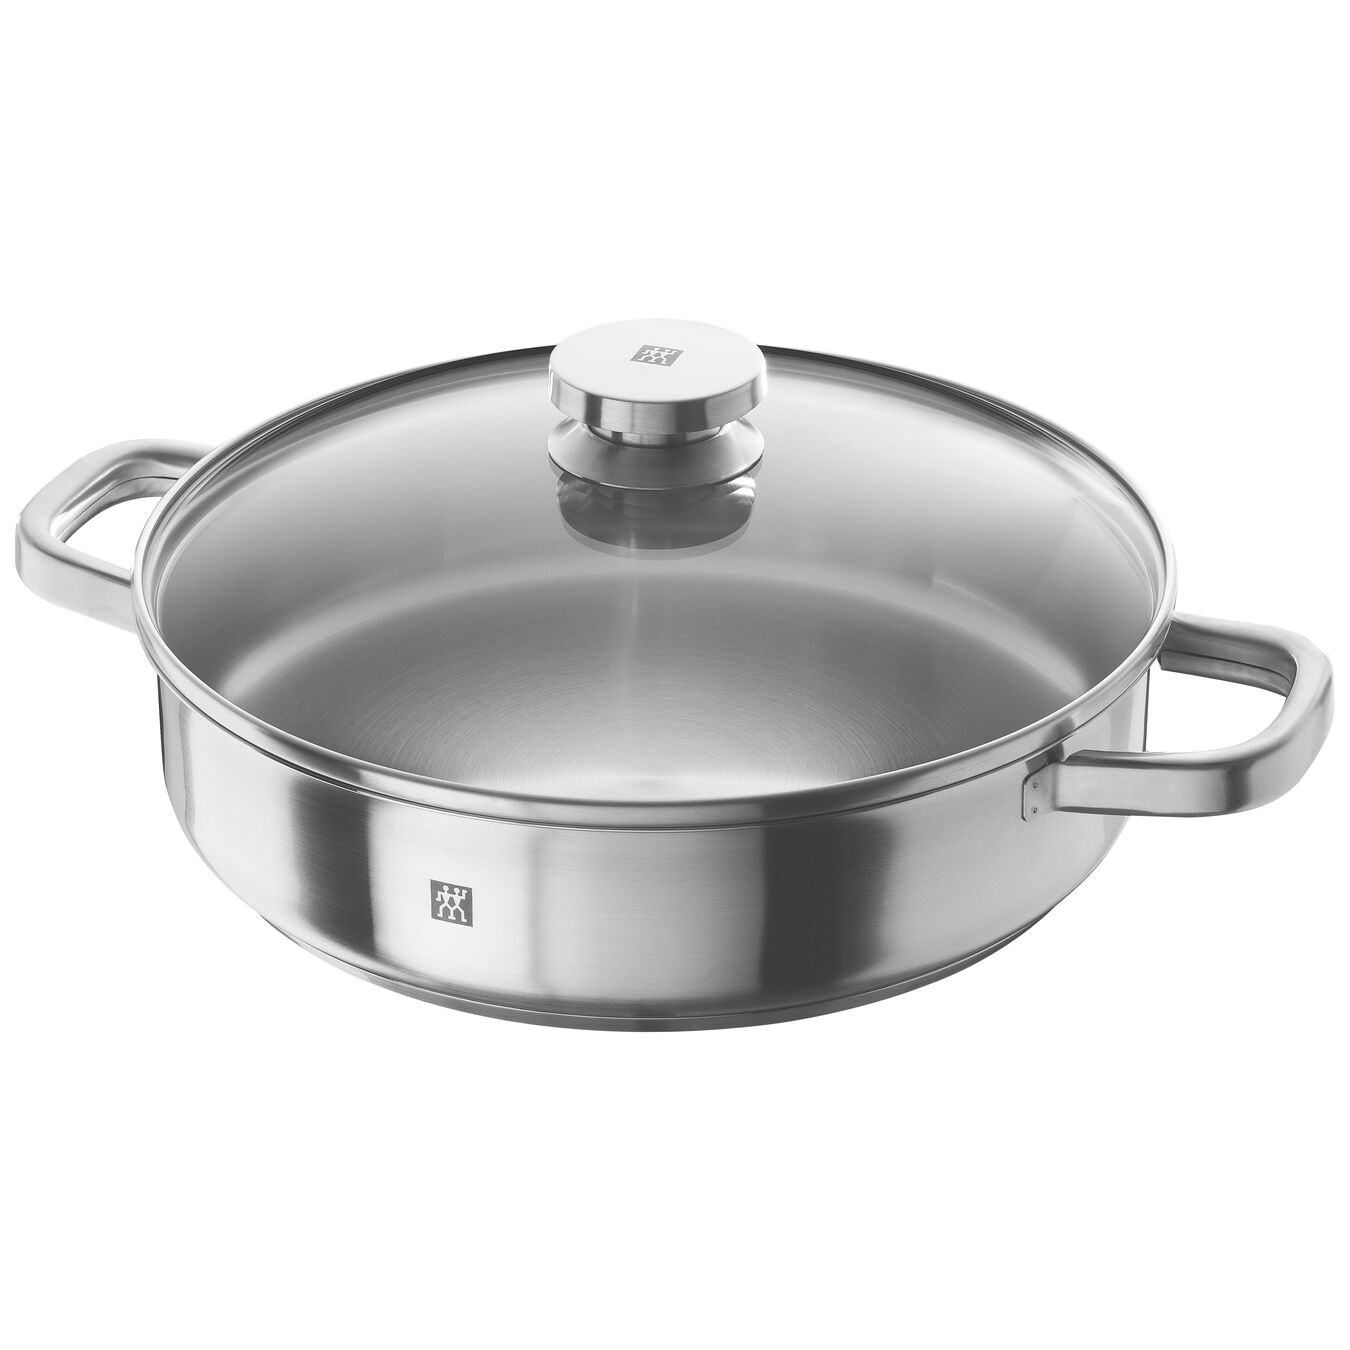 18/10 Stainless Steel round Sauteuse, Silver,,large 1